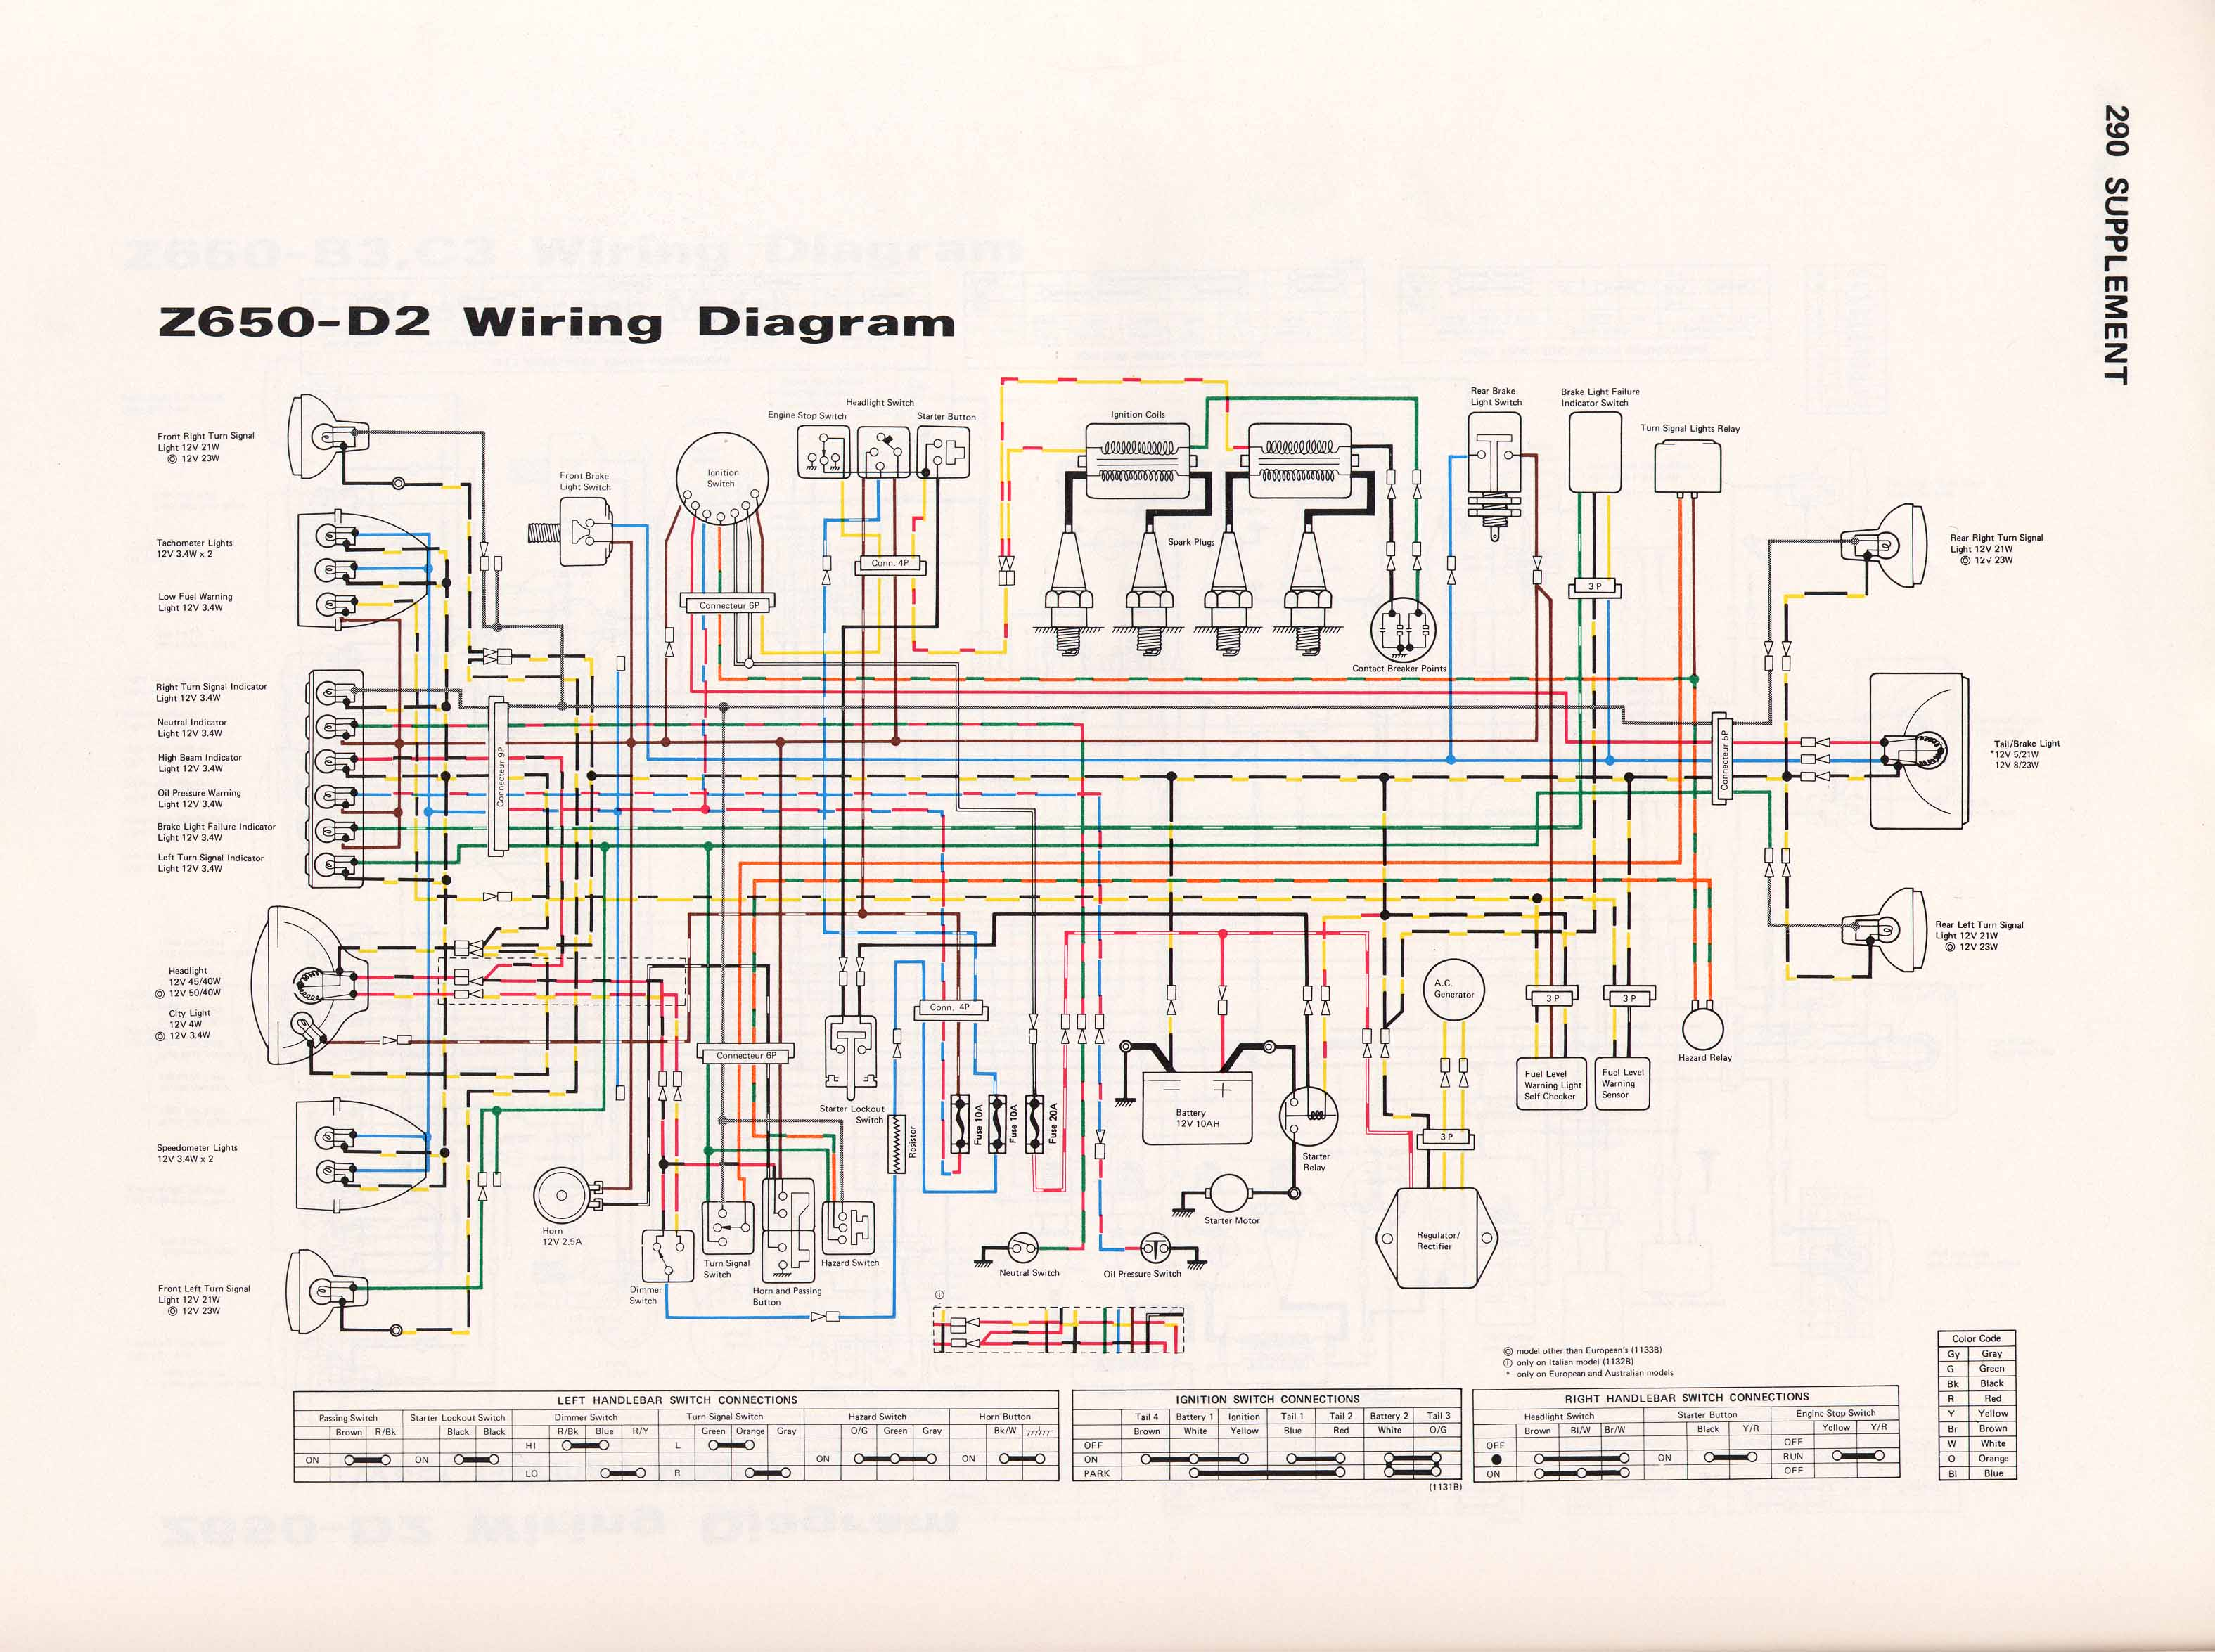 Kawasaki 800 Wiring Diagram Another Blog About Wire 2008 Teryx 1978 Kz650 Circuit Schematic Rh Kylemalonehair Com Vulcan Classic Vn800